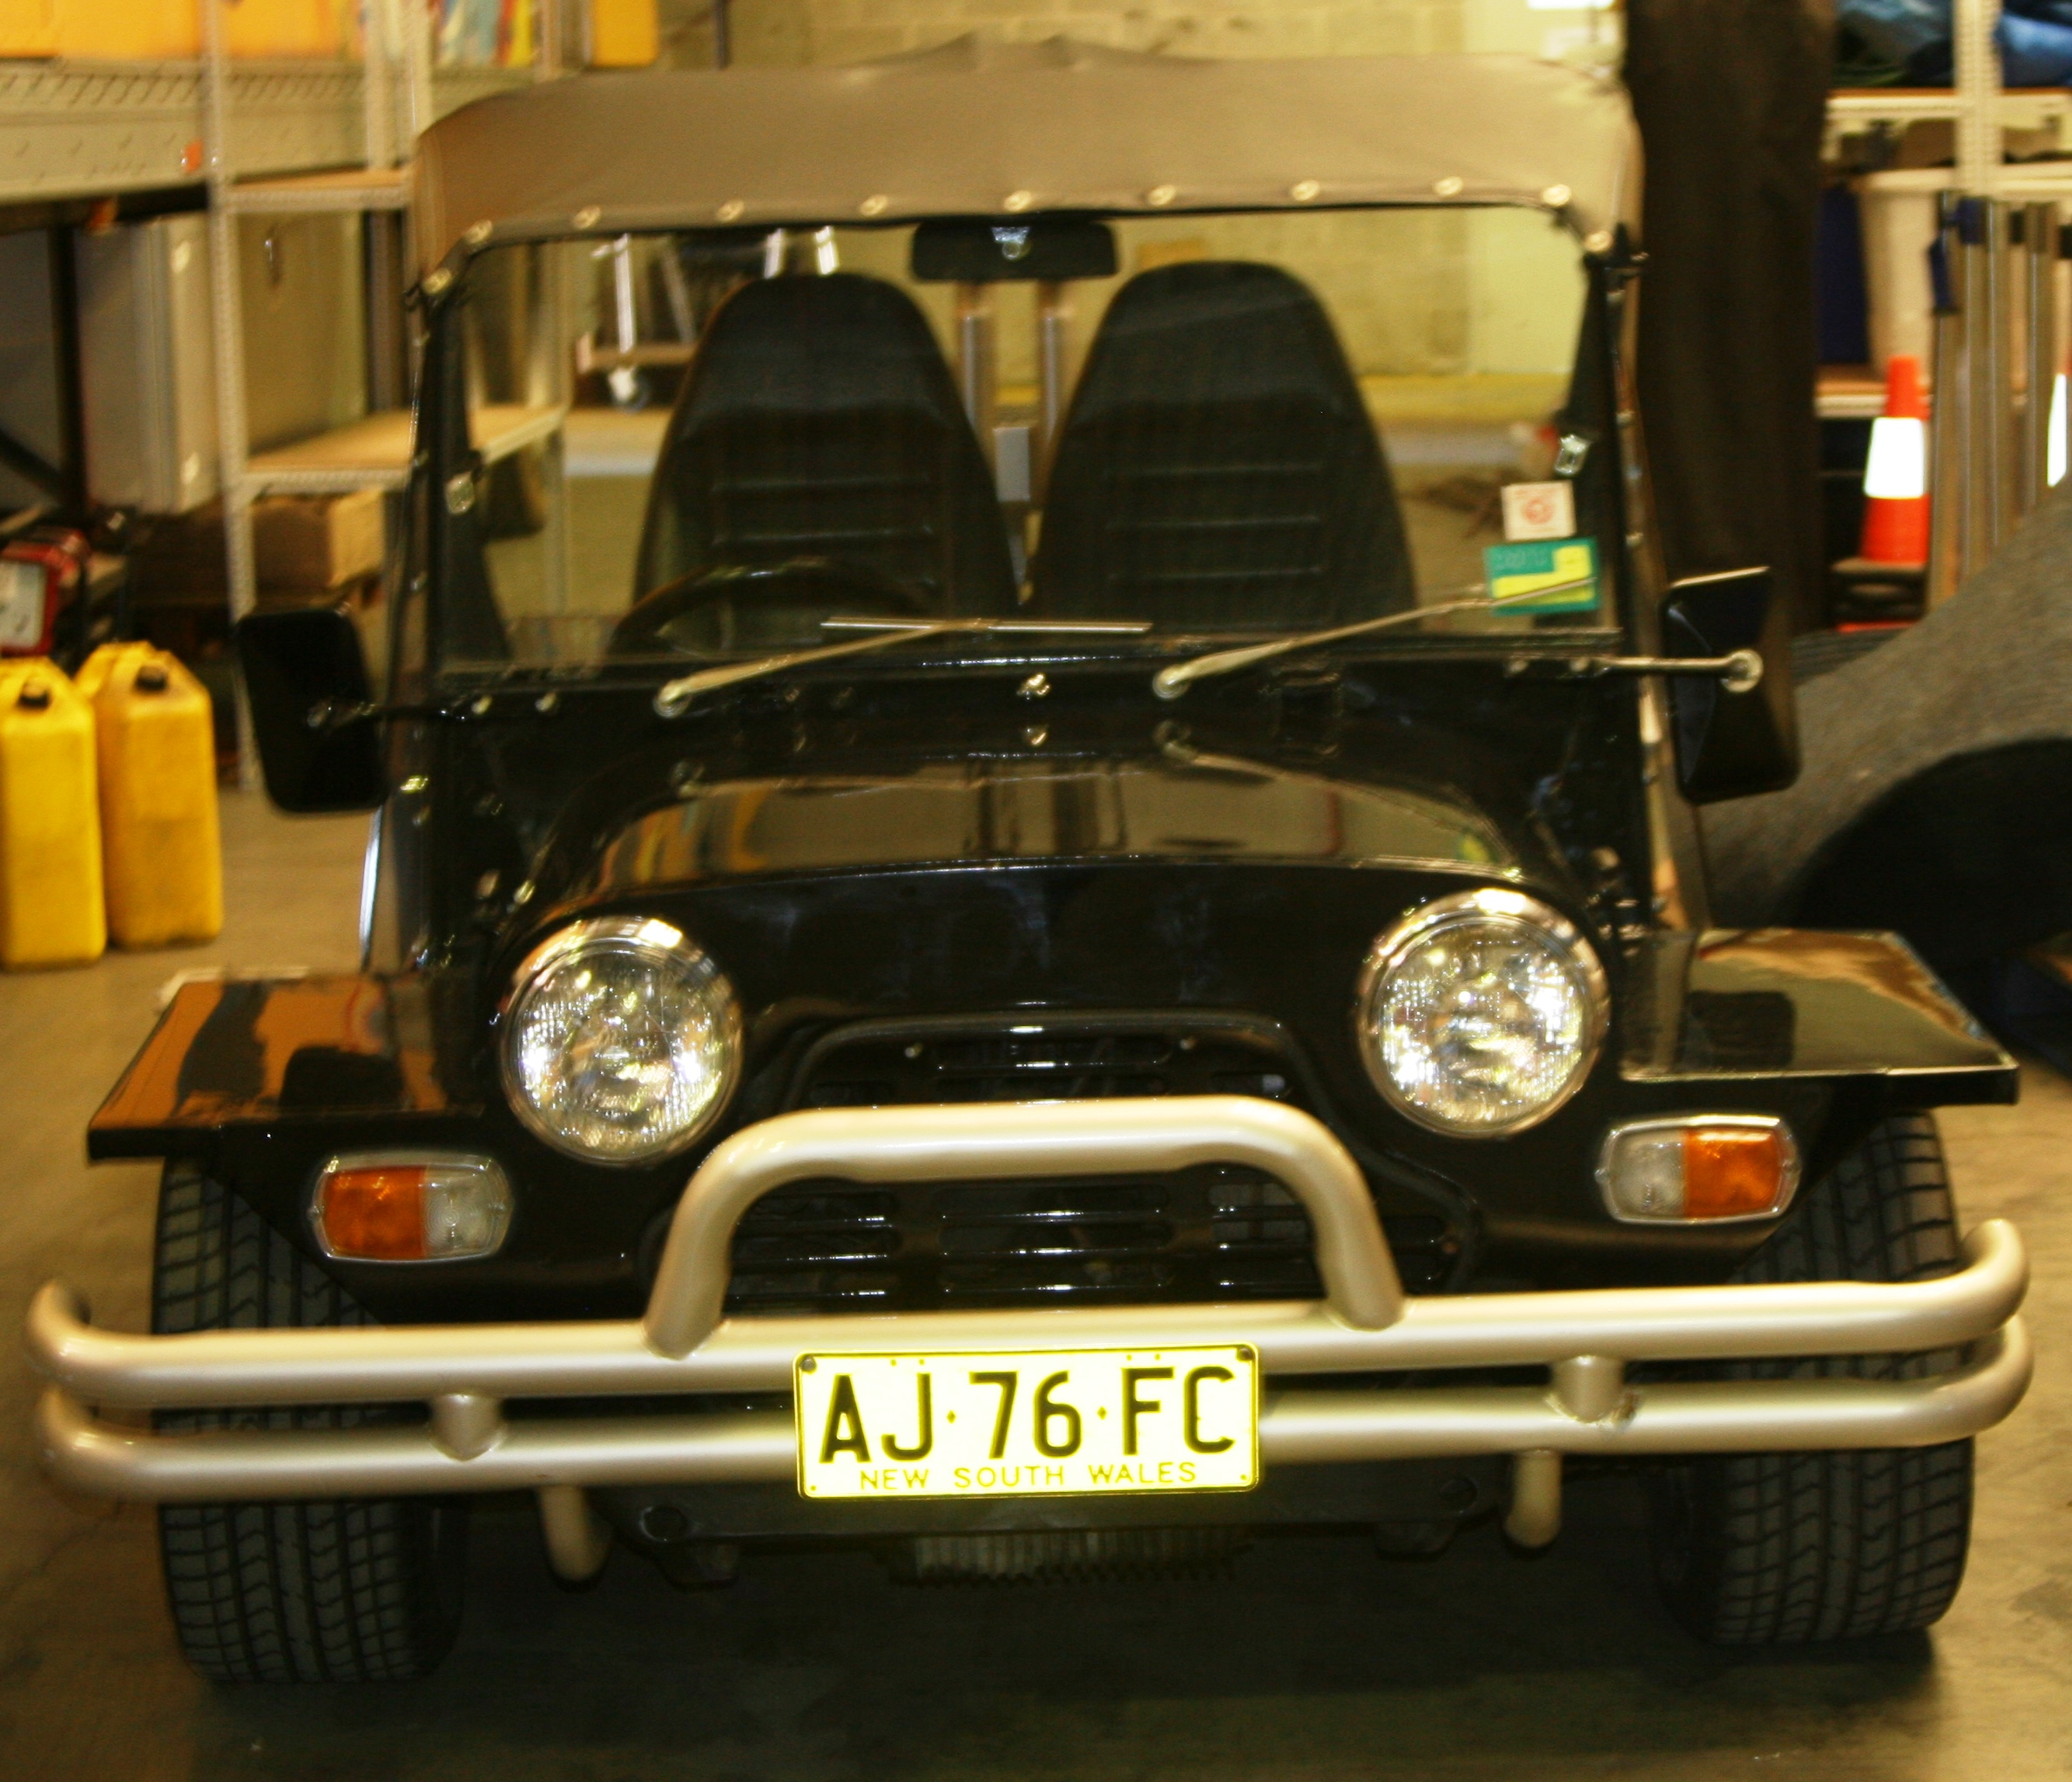 Vehicle-based events. Custom build. Fleet graphics. XXXX Mini Moke. 4XMOKE. Before modifications.